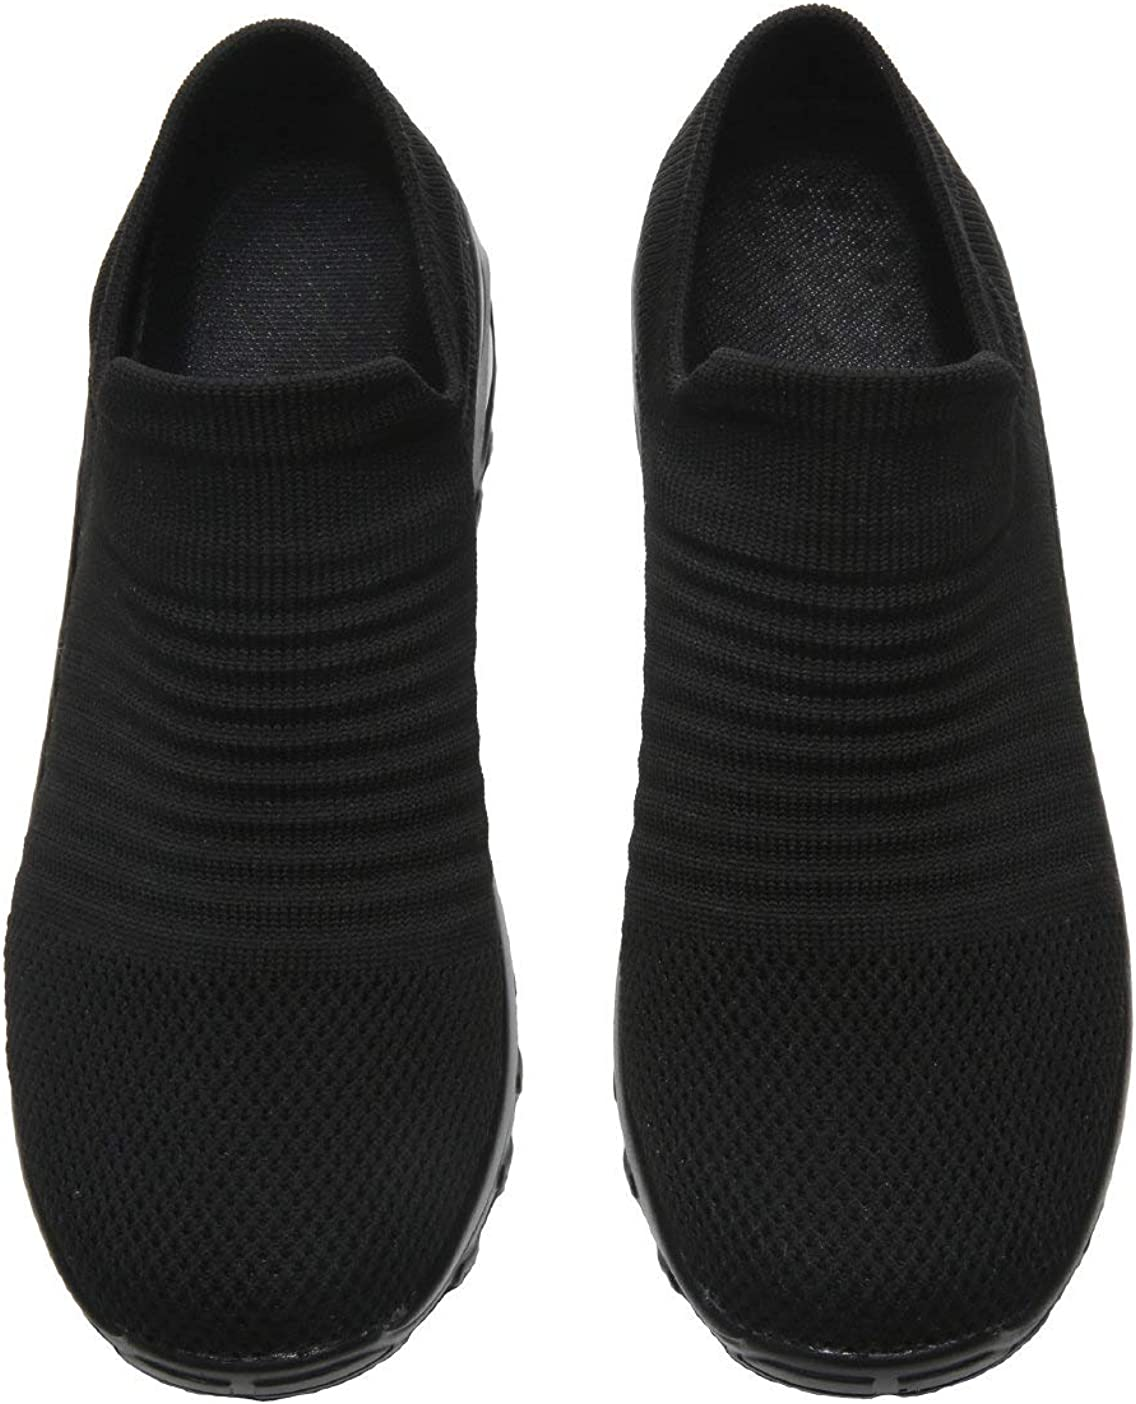 Womens Woven Breathable Dance Shoes Without Laces Thickened Increased Air Cushion Soles Working Walking Shoes